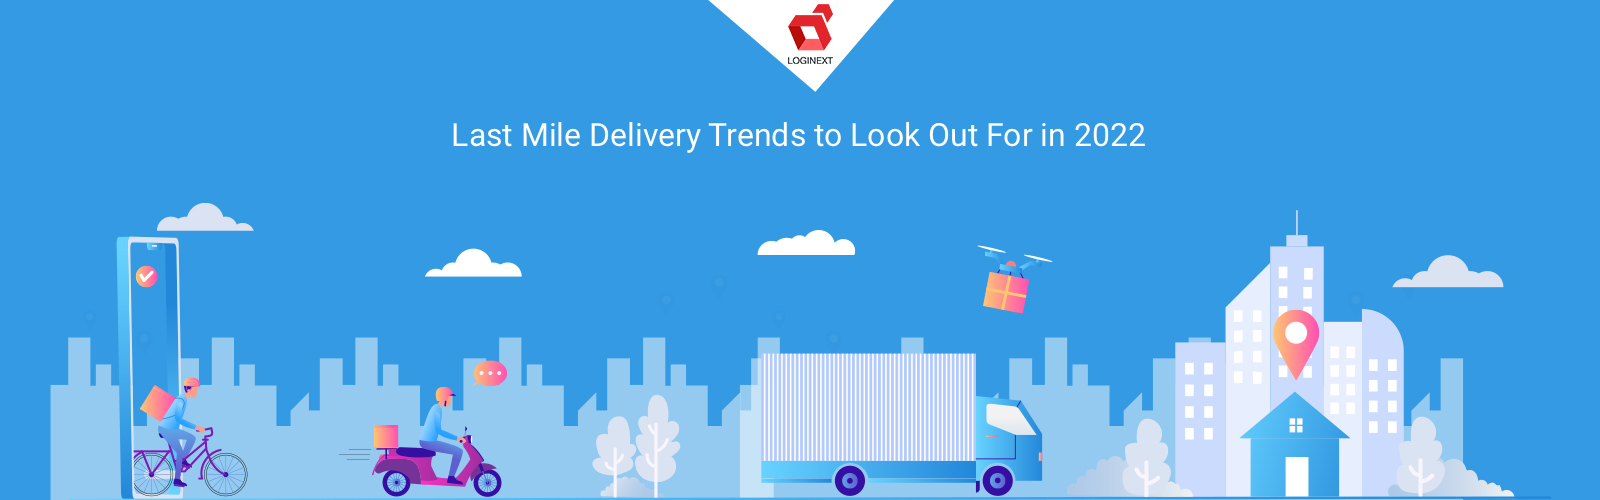 Top 7 Last Mile Delivery Trends to look out for in 2022